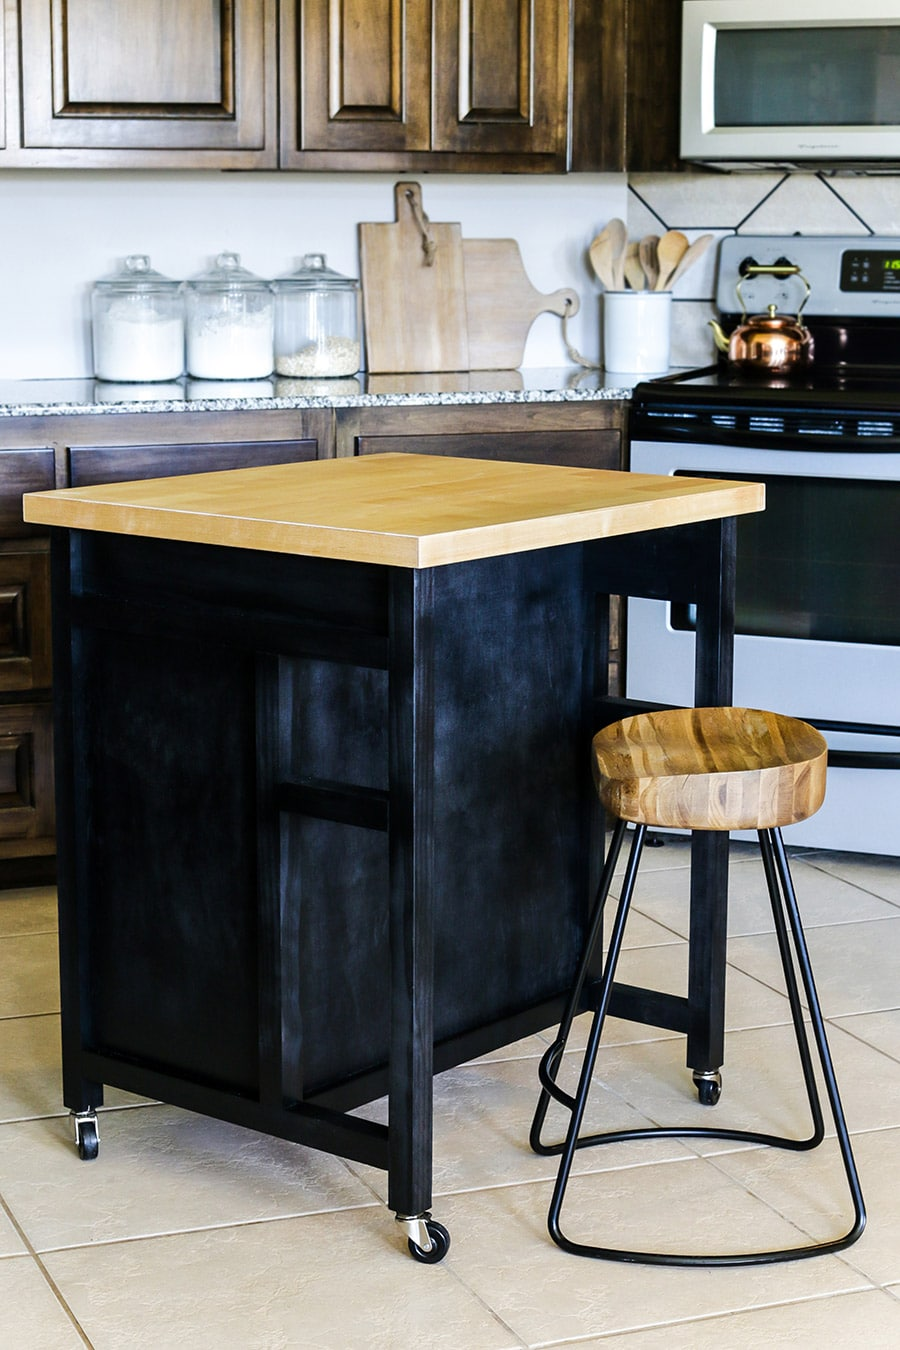 Fullsize Of Diy Kitchen Island With Storage